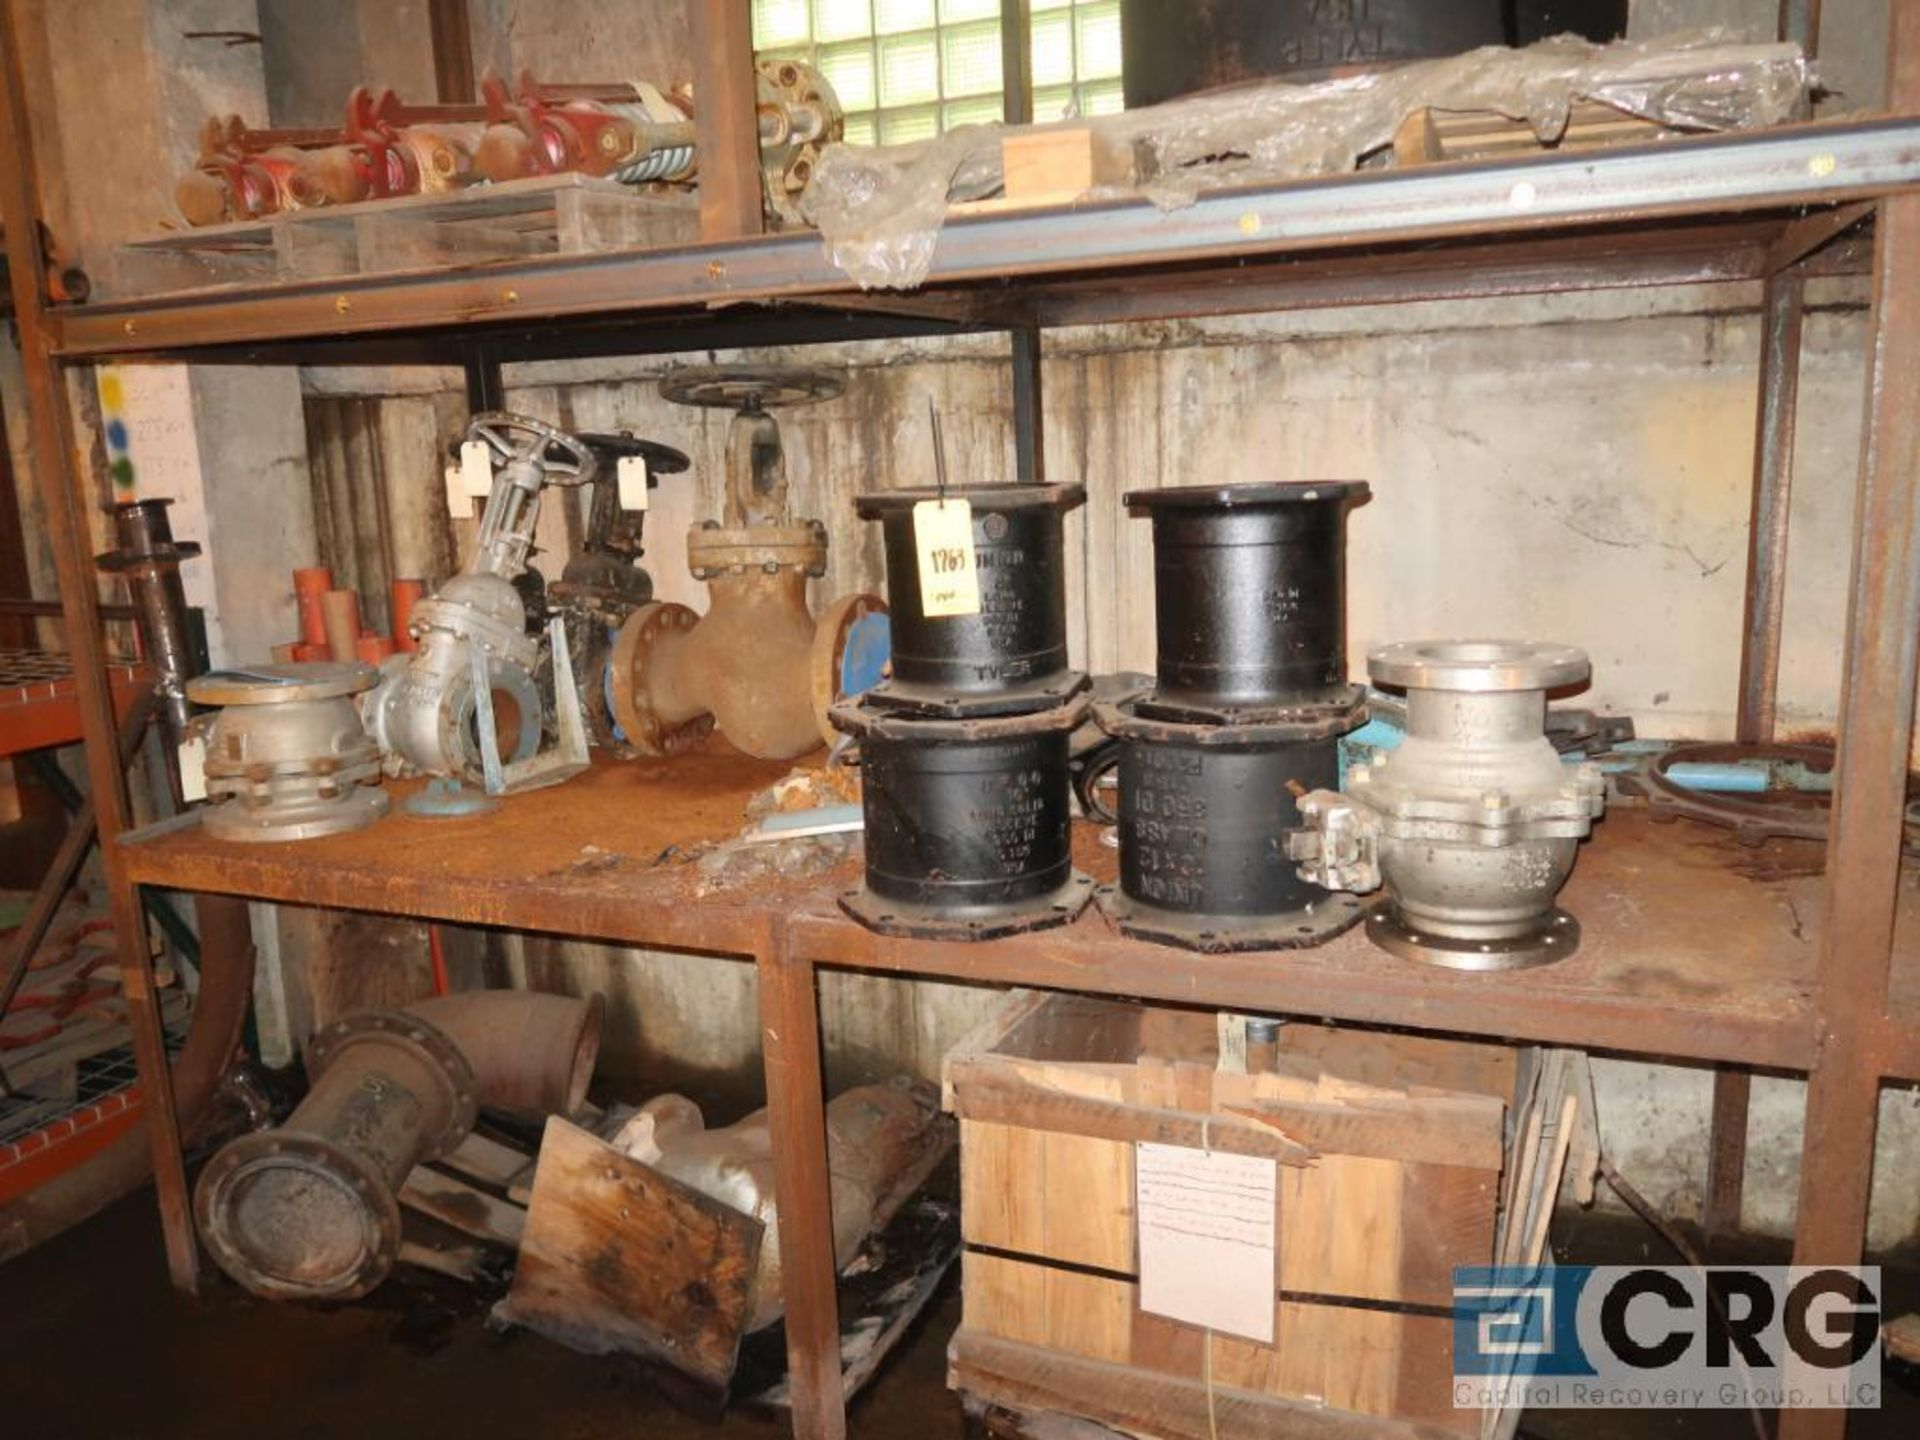 Lot of assorted parts including expansion joint, valves, fan blade, and rotors (Next Bay Cage Area) - Image 14 of 15